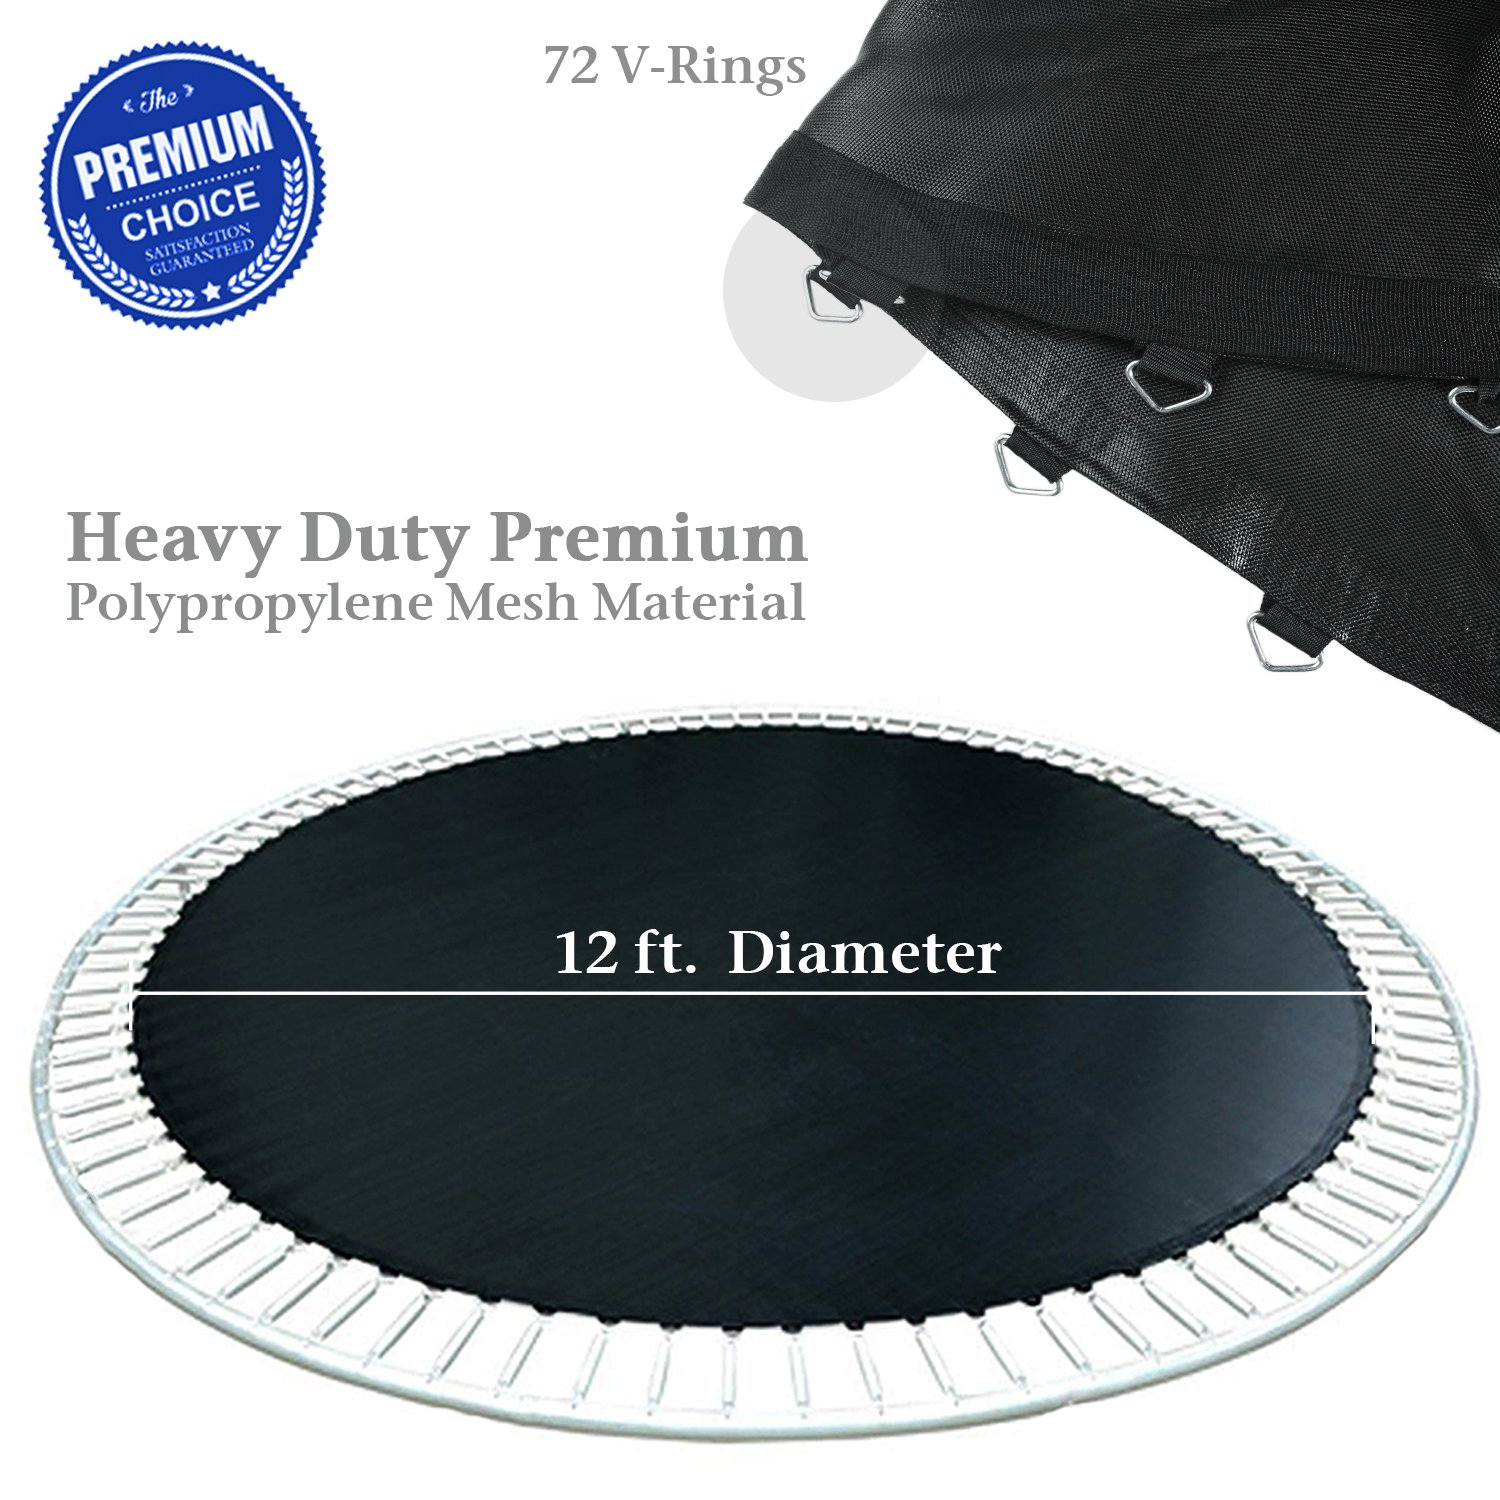 PARTYSAVING 12' Round Replacement Trampoline Mat with 72 Rings, for 14' Frames, APL1371 for 14' Frames